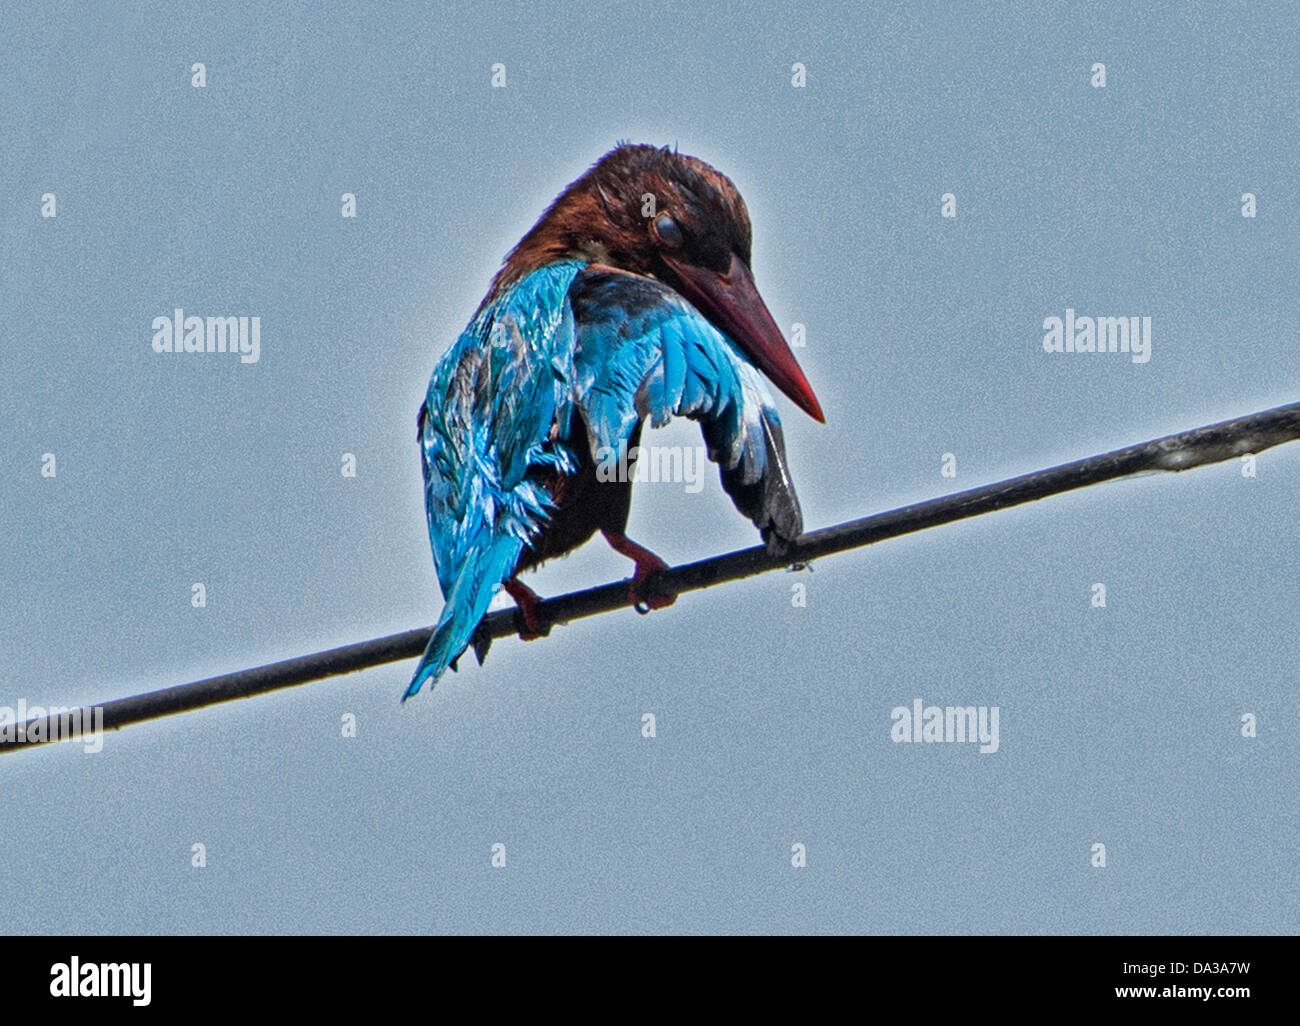 White throated kingfisher (Halcyon smyrnensis) in the backwaters of Kerala, India - Stock Image